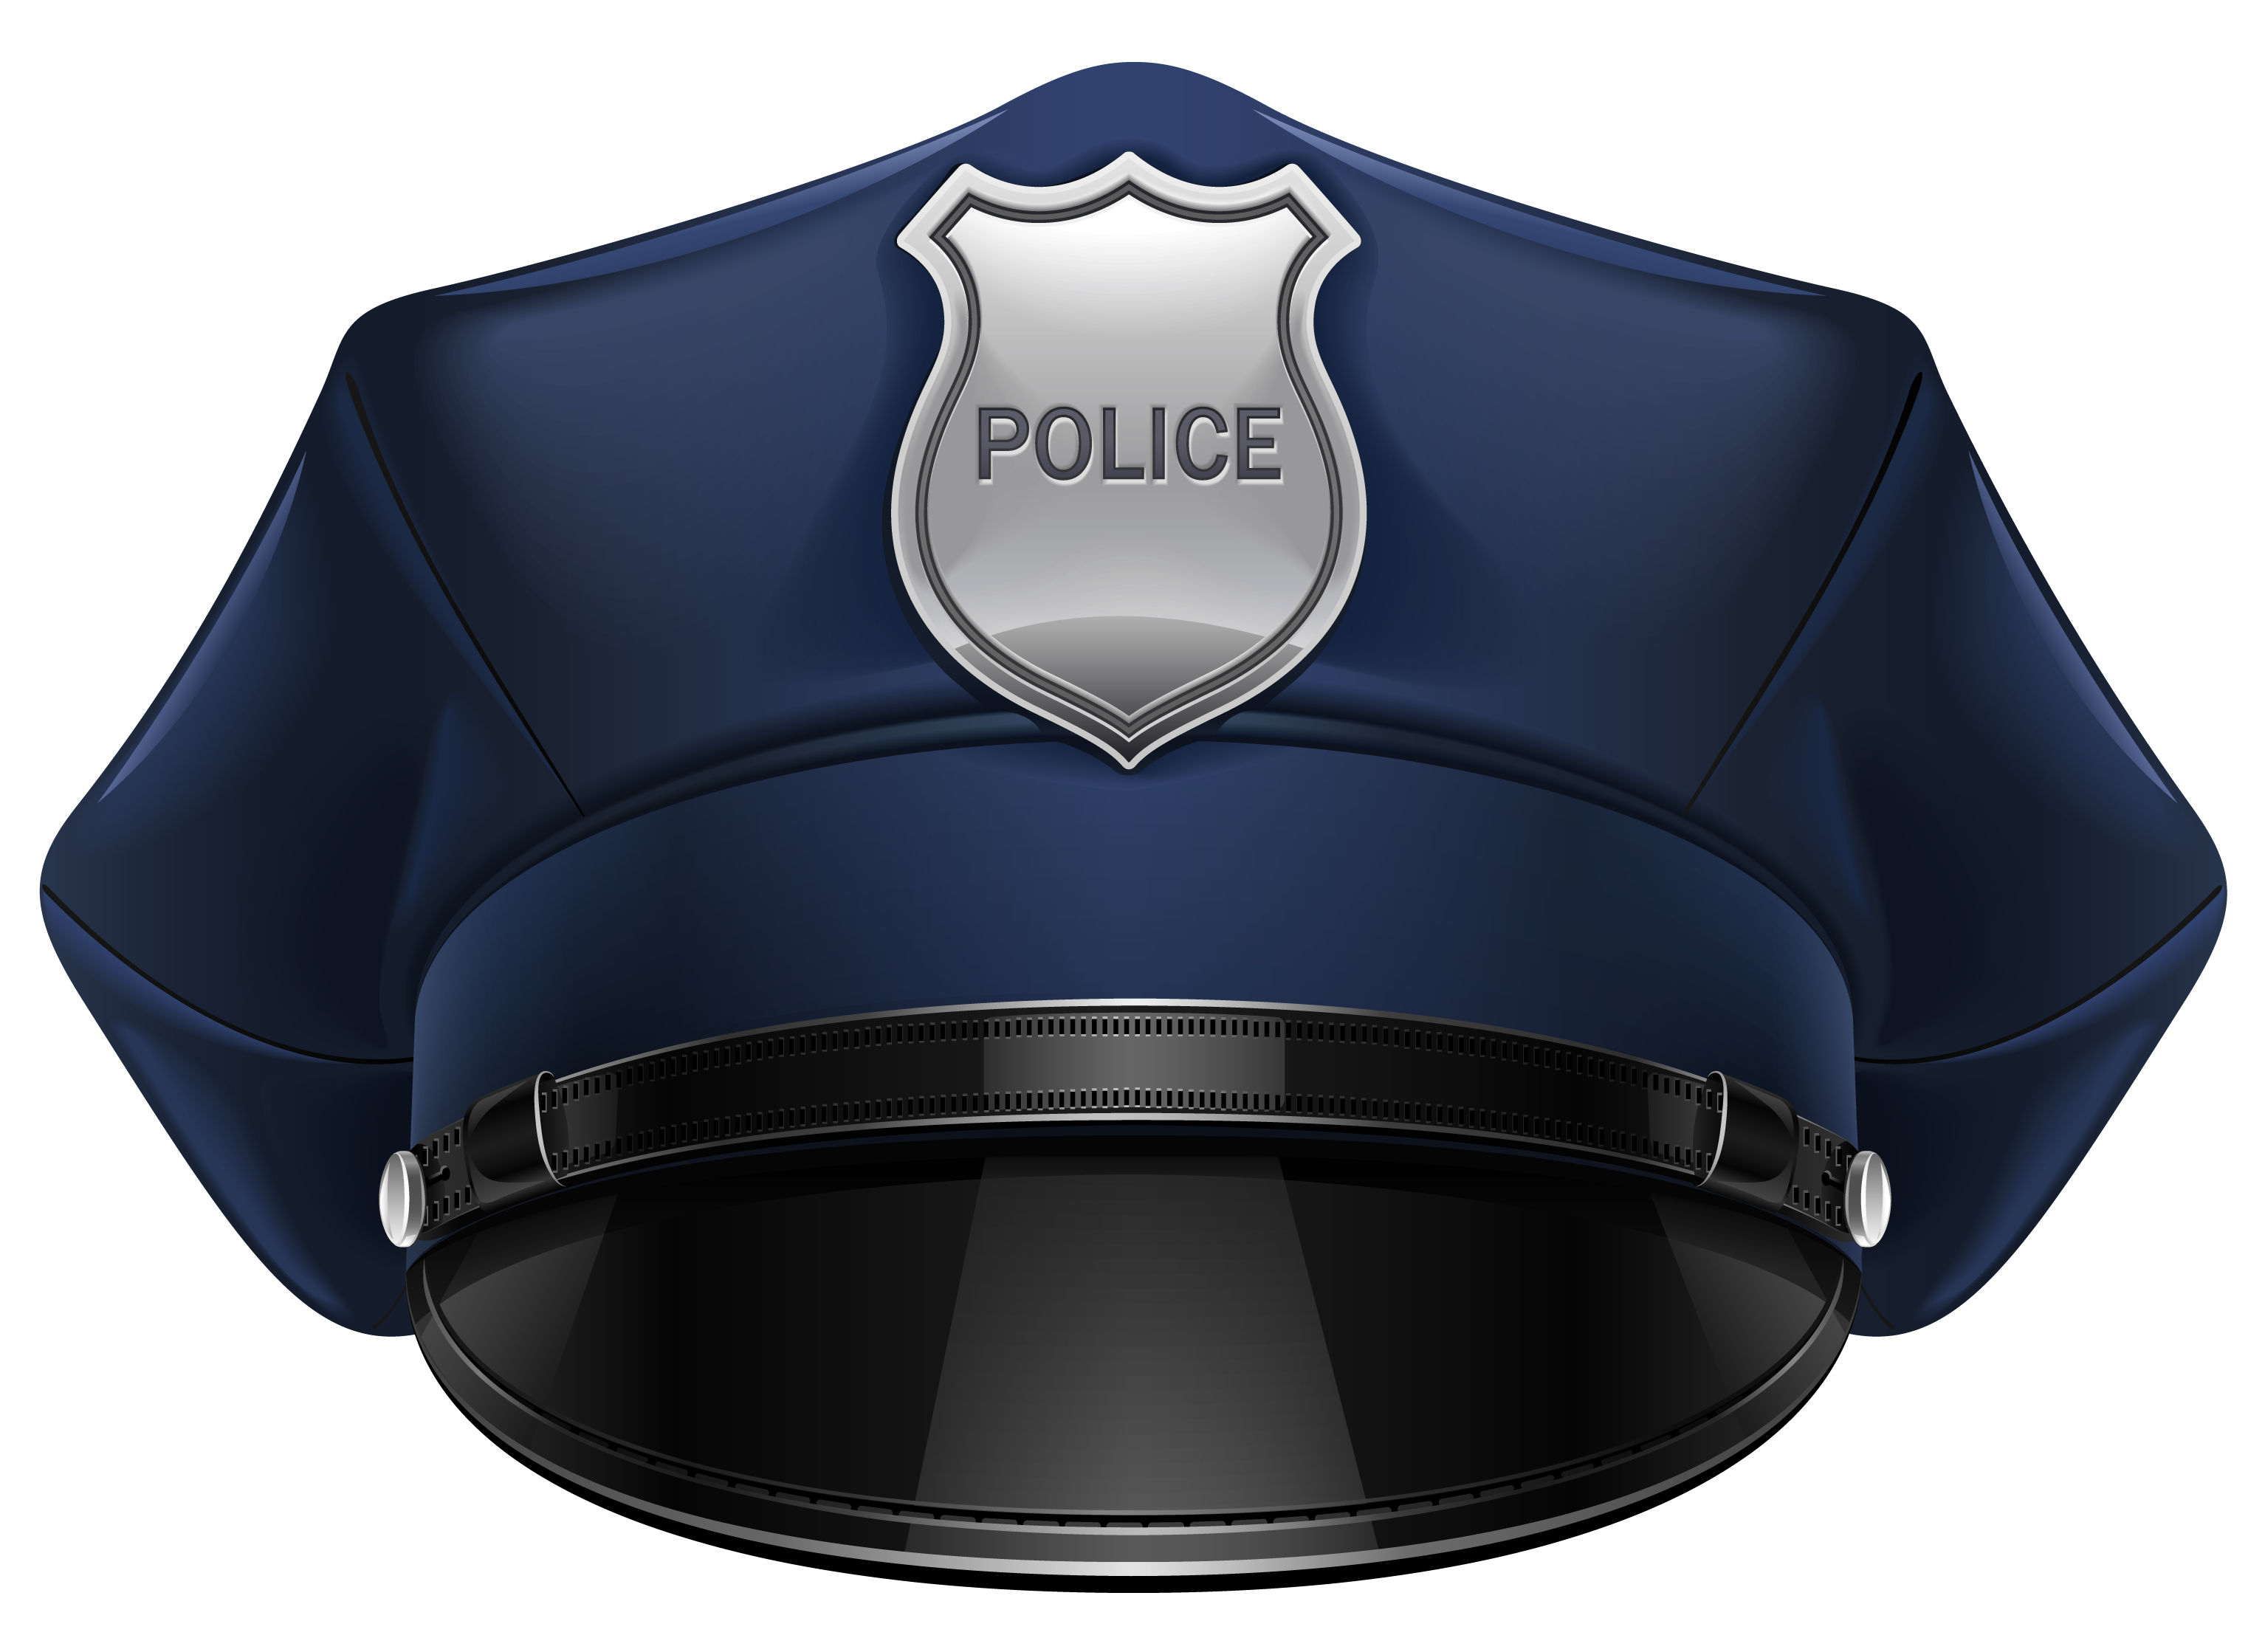 Police clipart police equipment #9